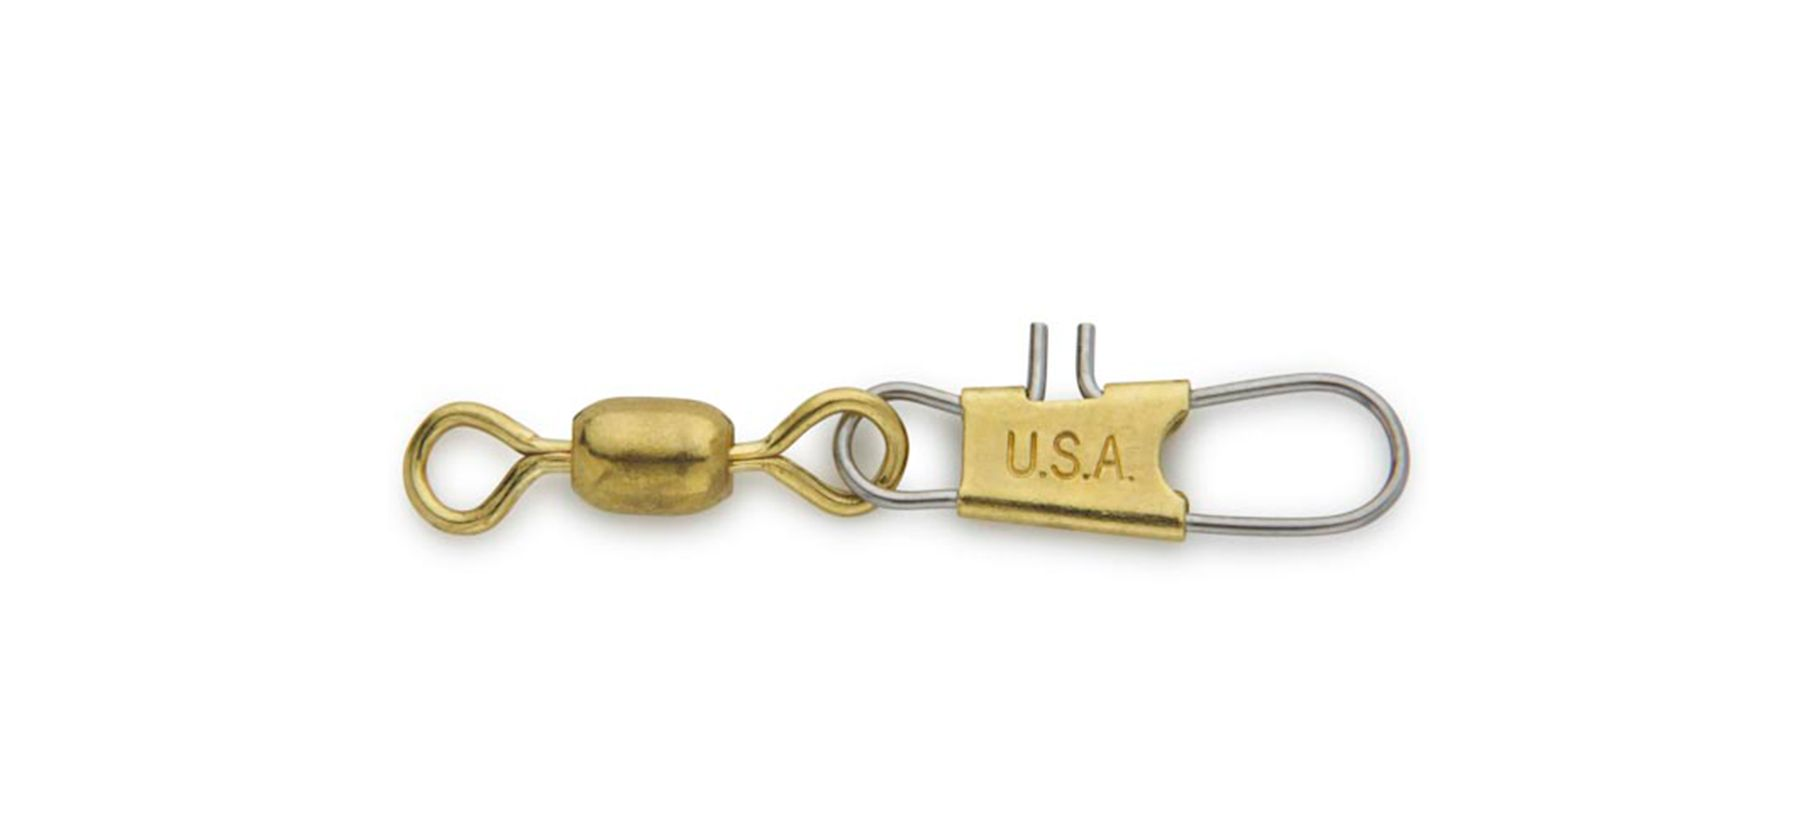 Brass Interlock Snap Swivel -